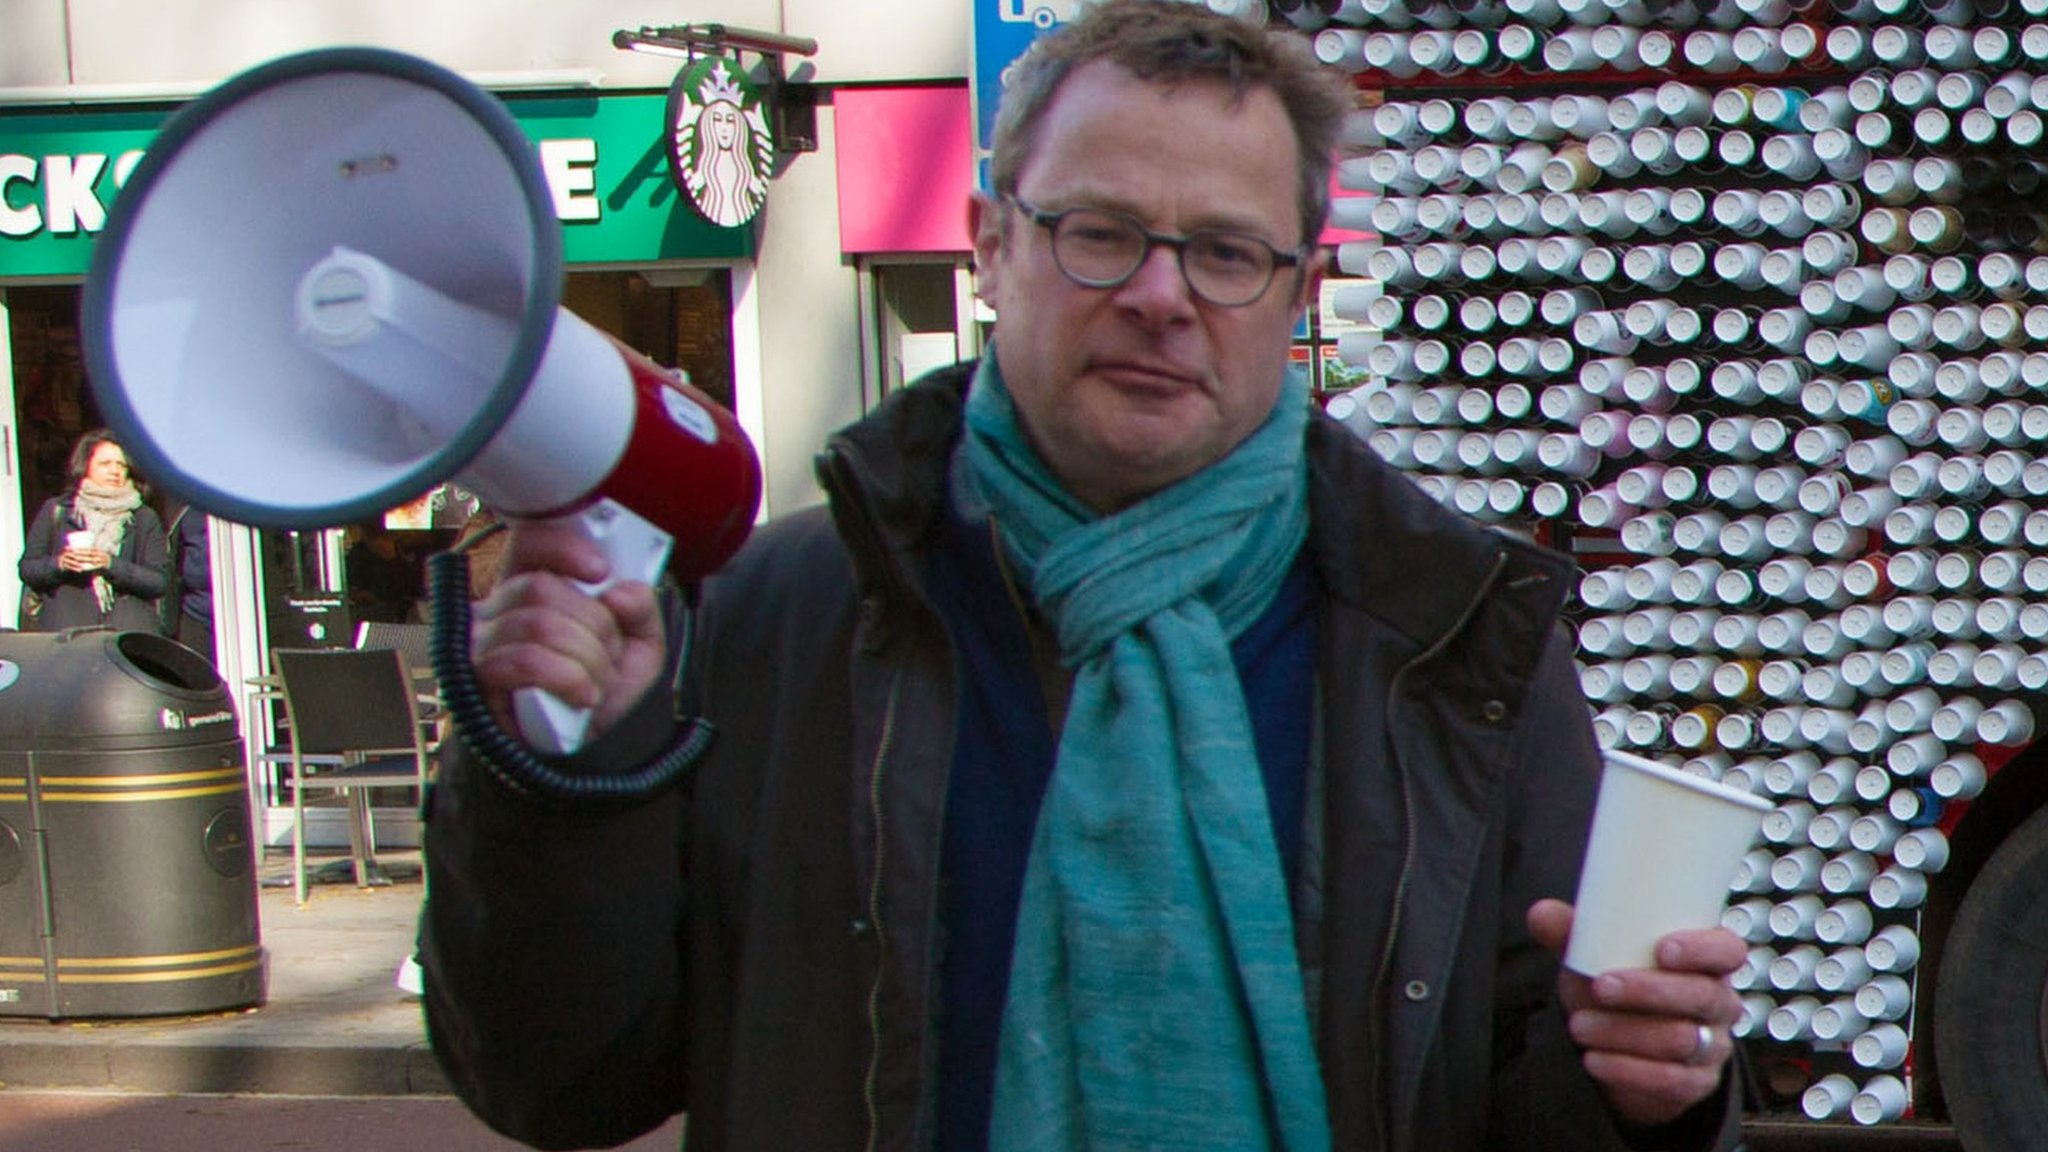 Hugh Fearnley-Whittingstall standing in front of a bus made of cups